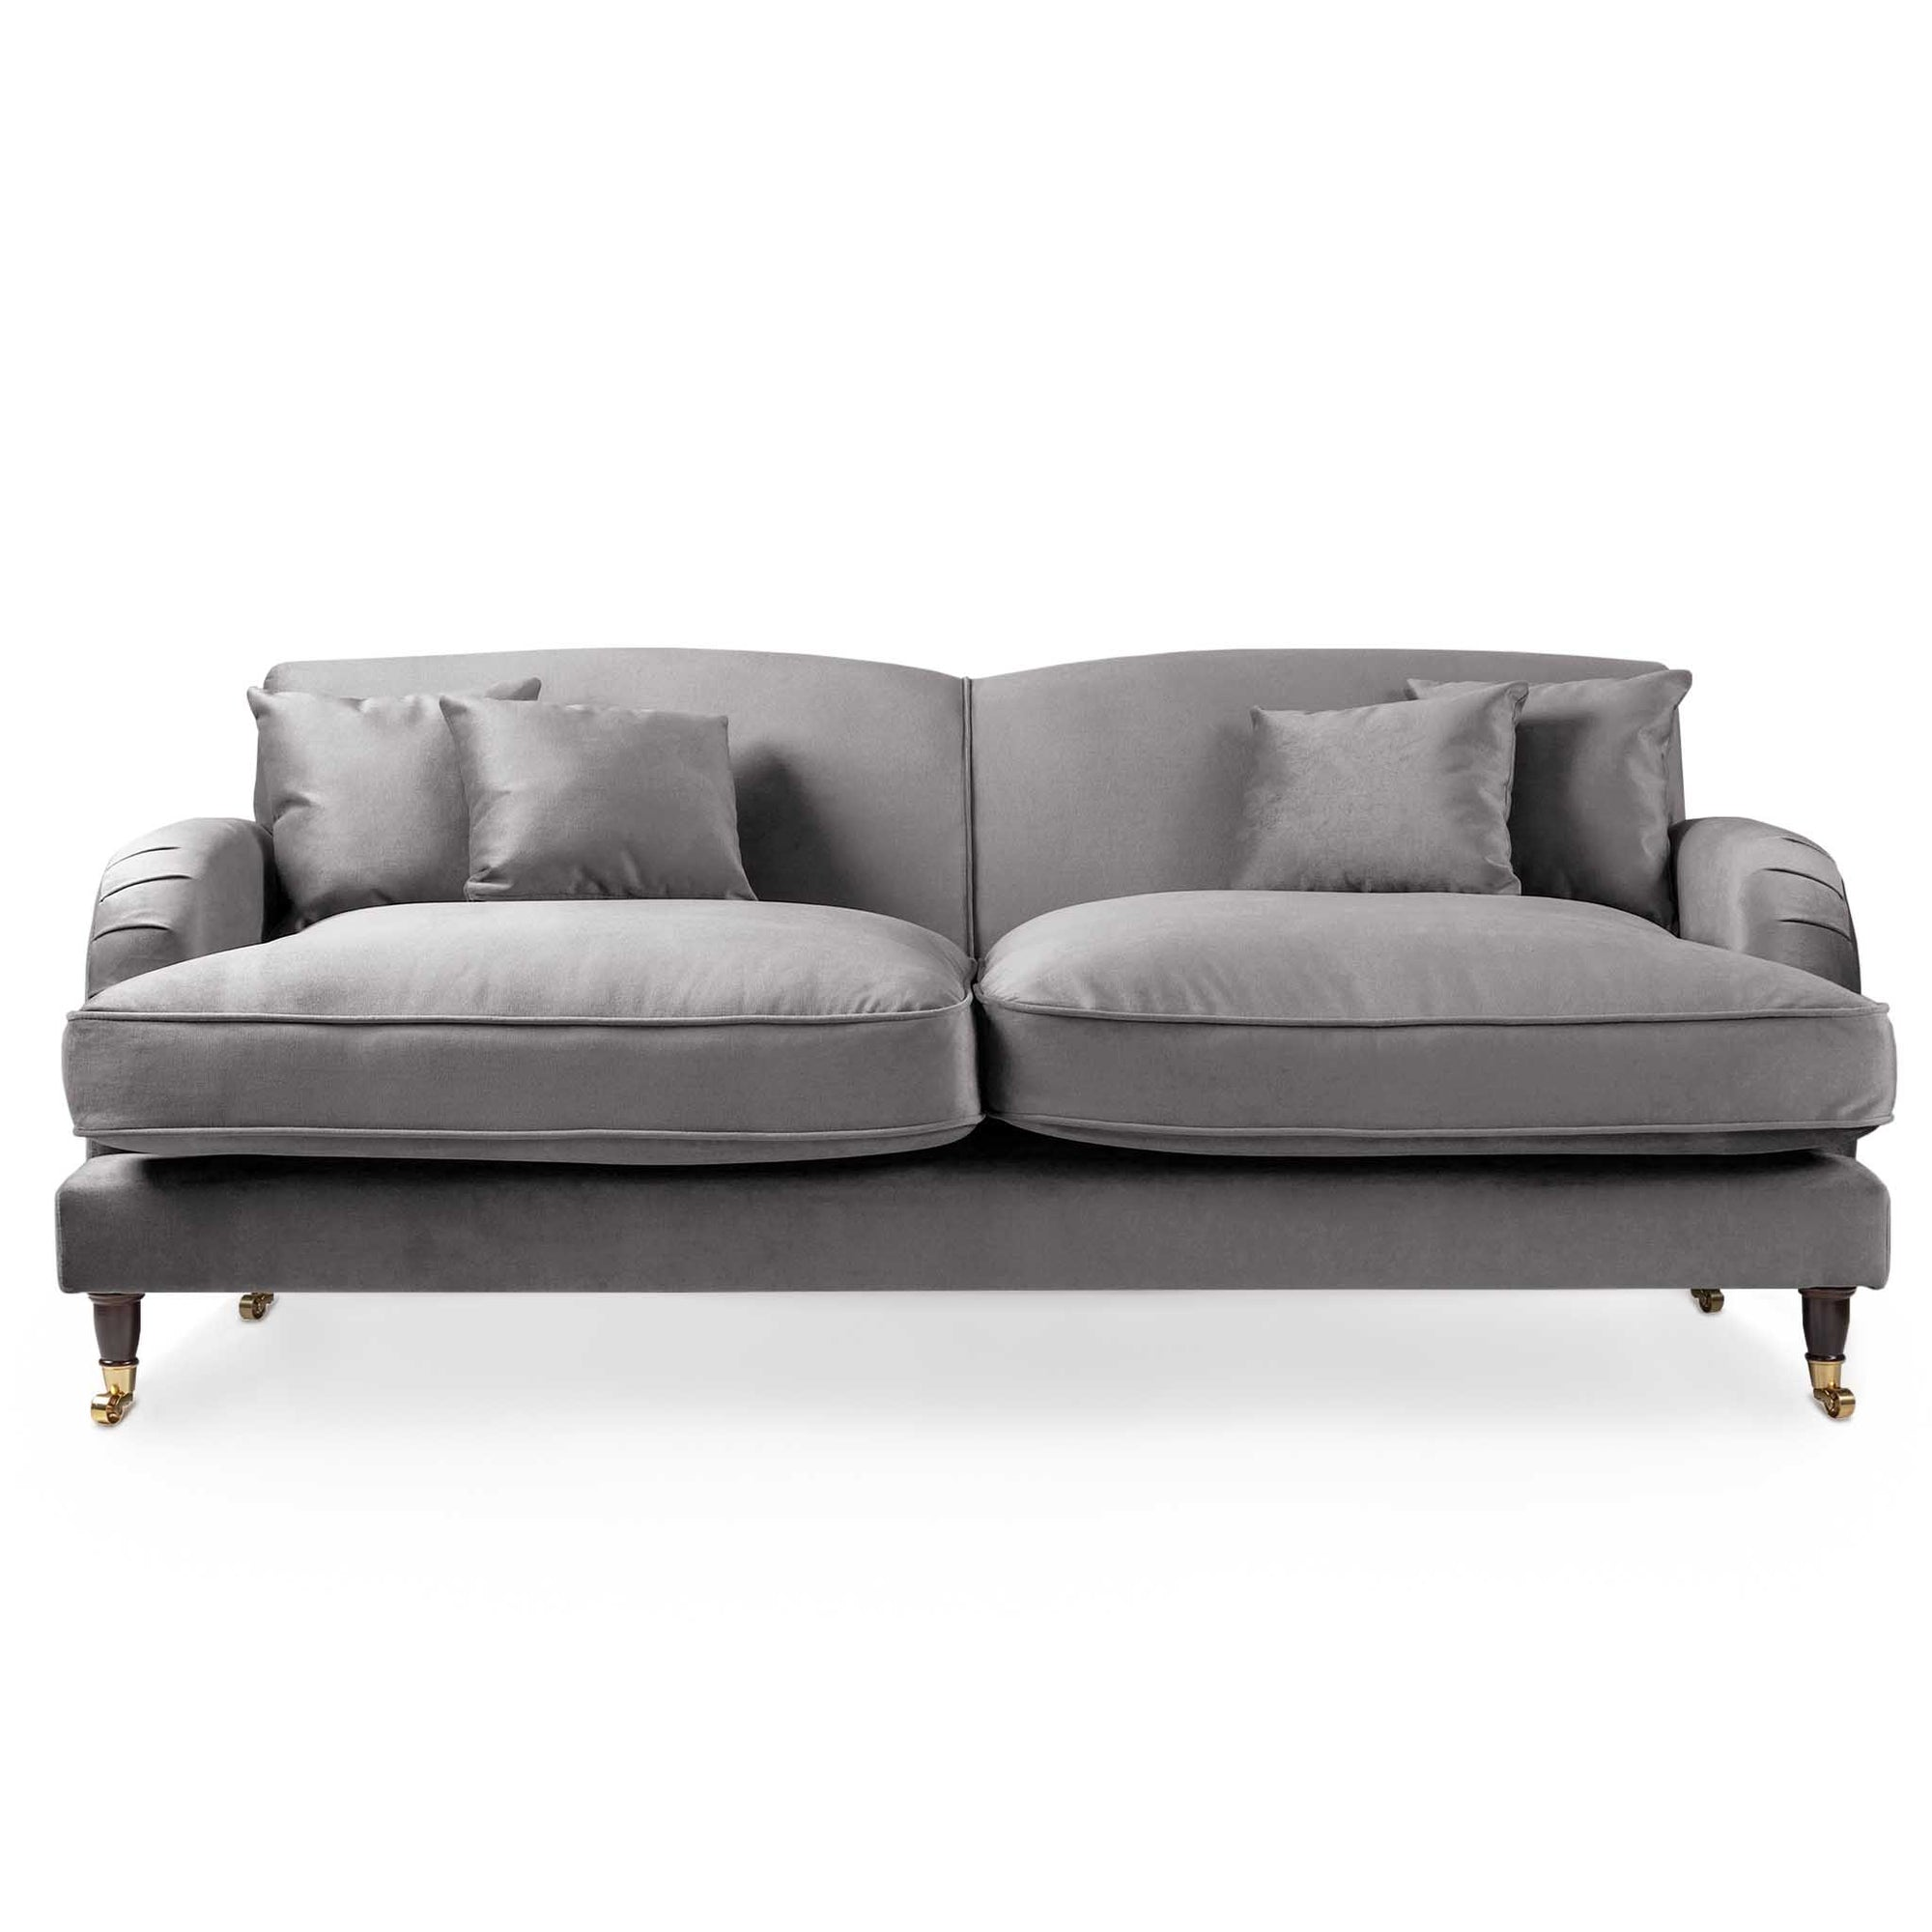 Piper Grey Velvet 3 Seater Sofa from Roseland Furniture